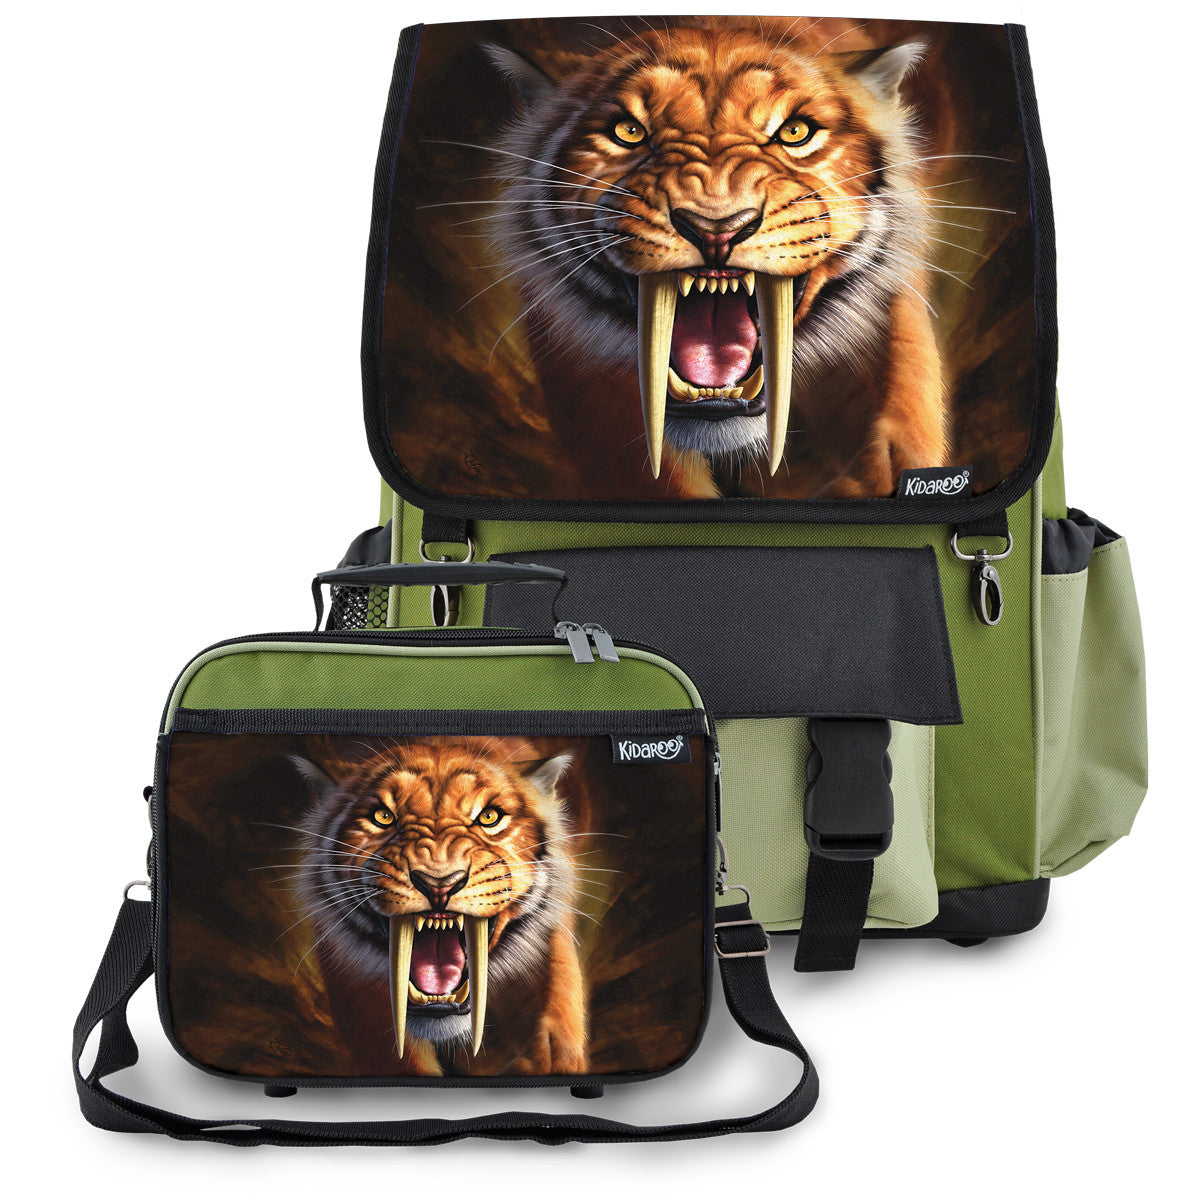 Kidaroo Khaki Green Saber Tooth Tiger School Backpack & Lunchbox Set for Boys, Girls, Kids